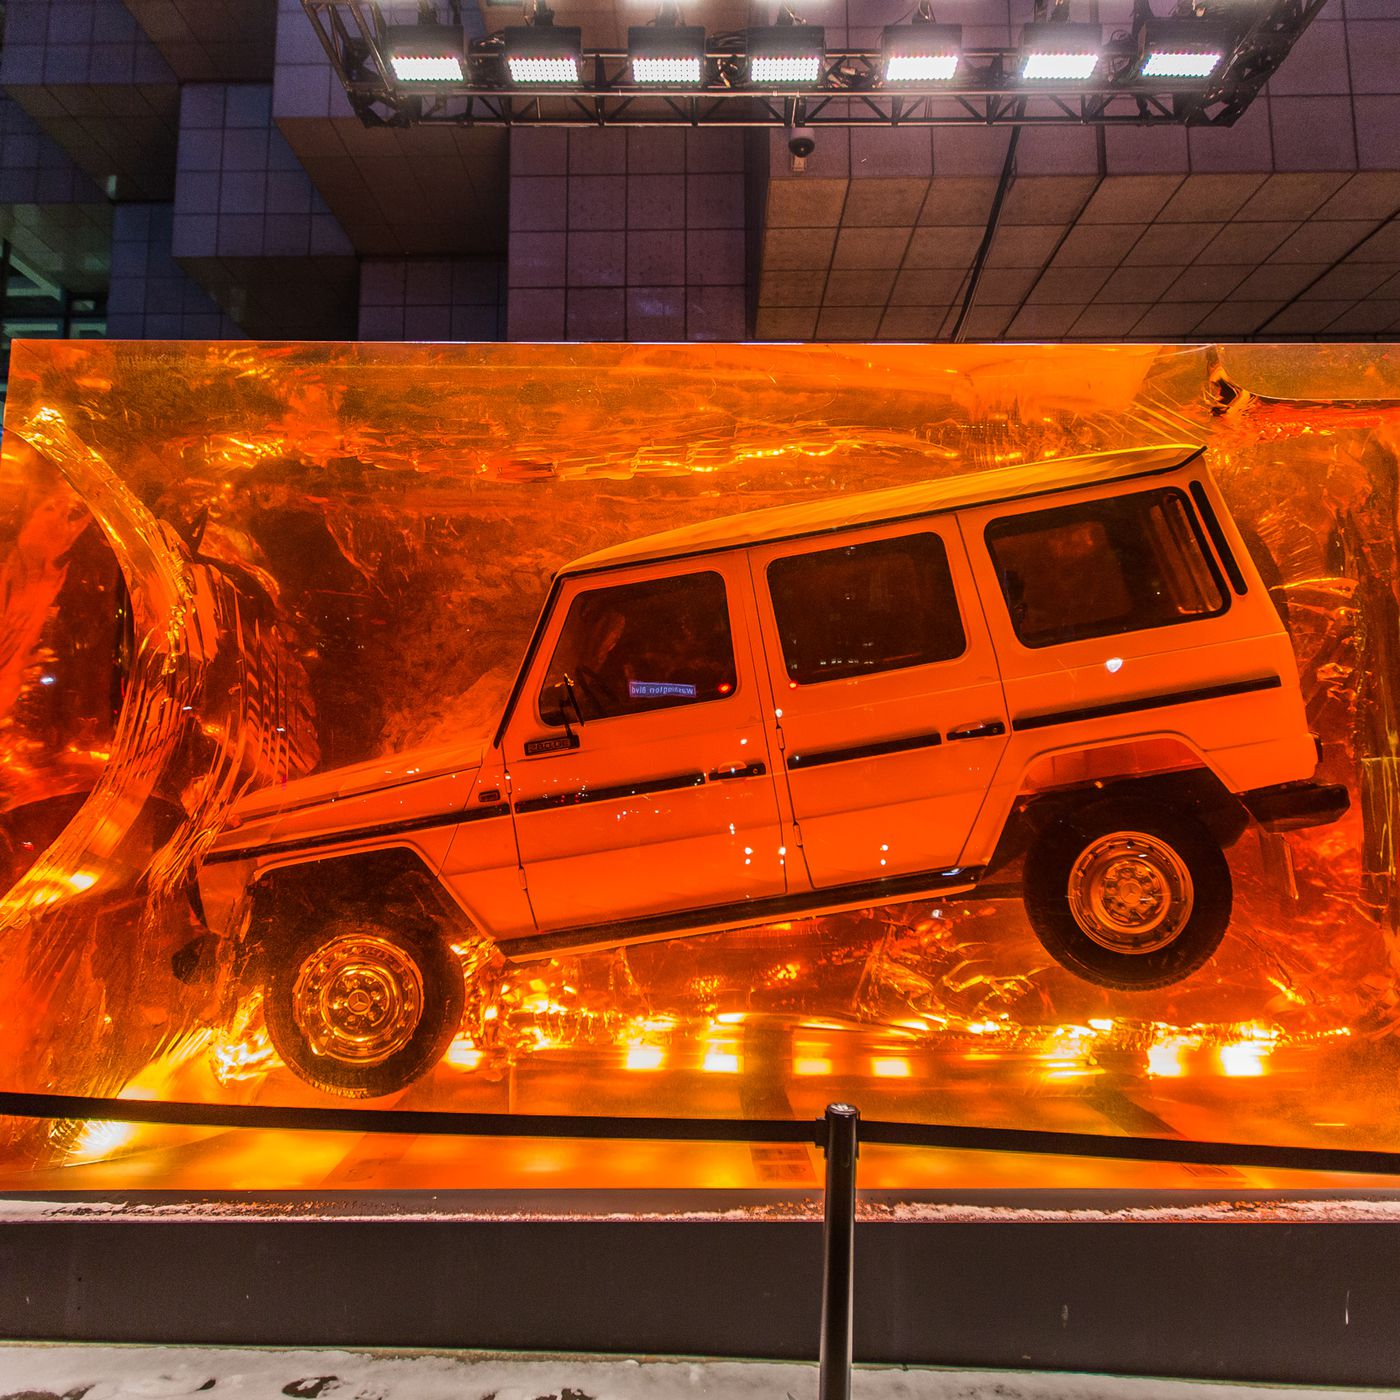 The Best Worst And Weirdest Cars From The Detroit Auto Show - Show car transport